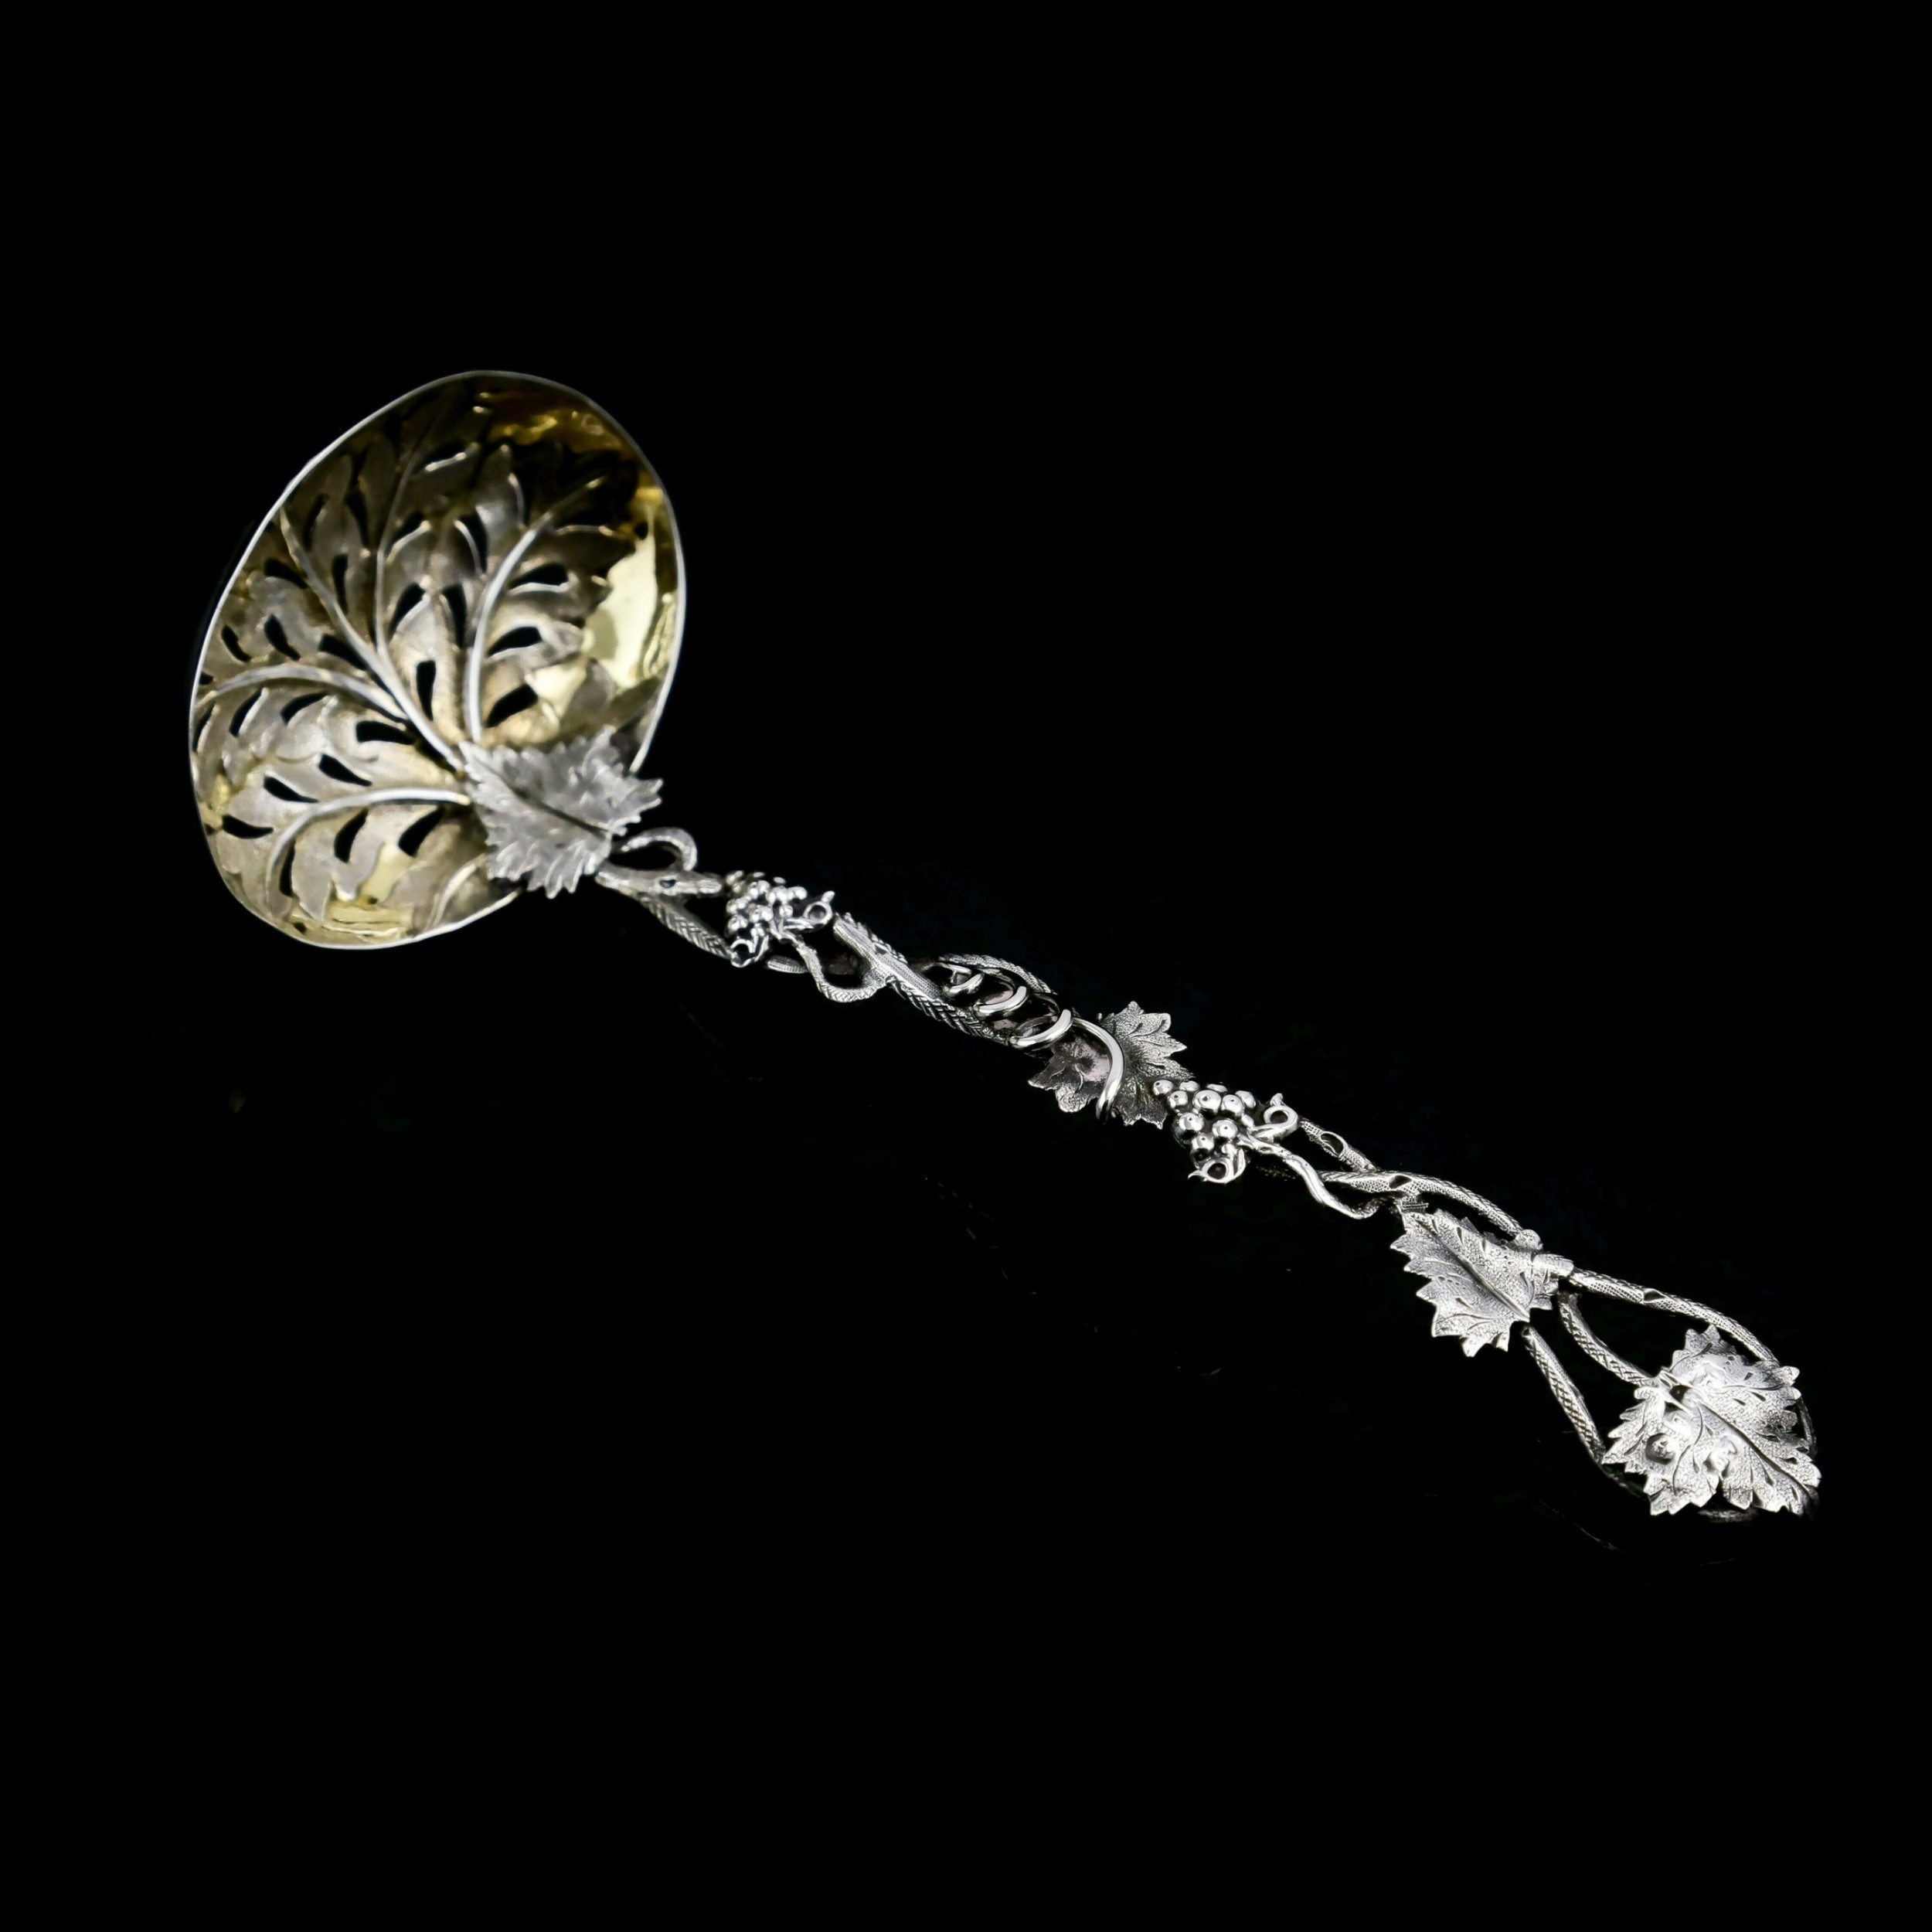 antique victorian solid sterling silver sugar sifter spoon with grape vine design taylor perry 1853